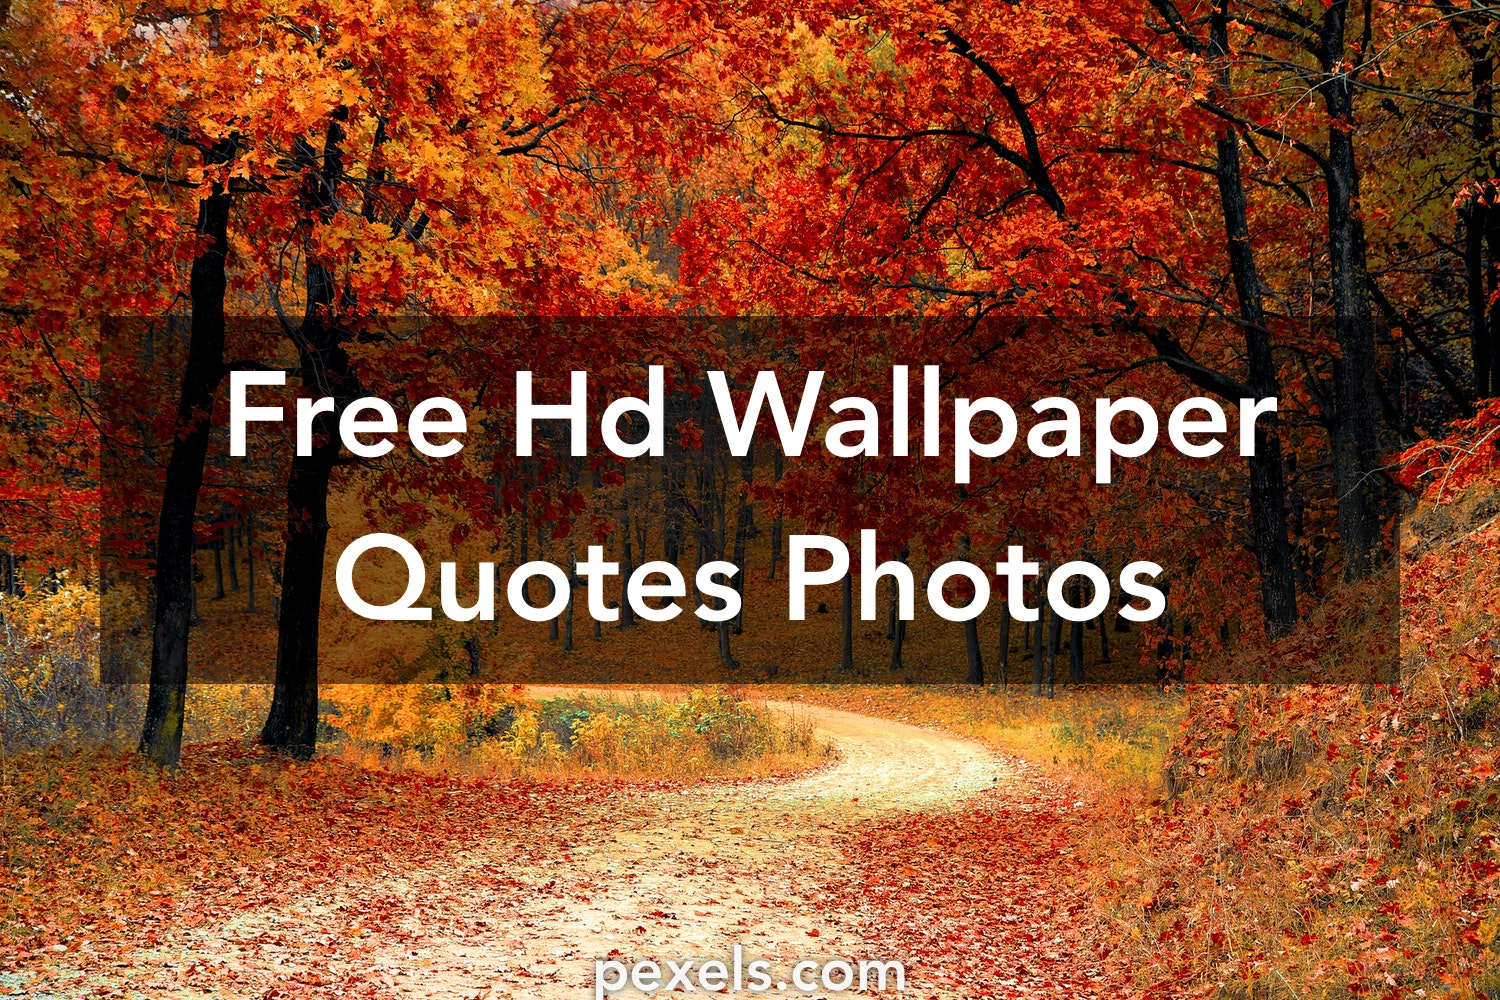 Free Stock Photos Of Hd Wallpaper Quotes Pexels